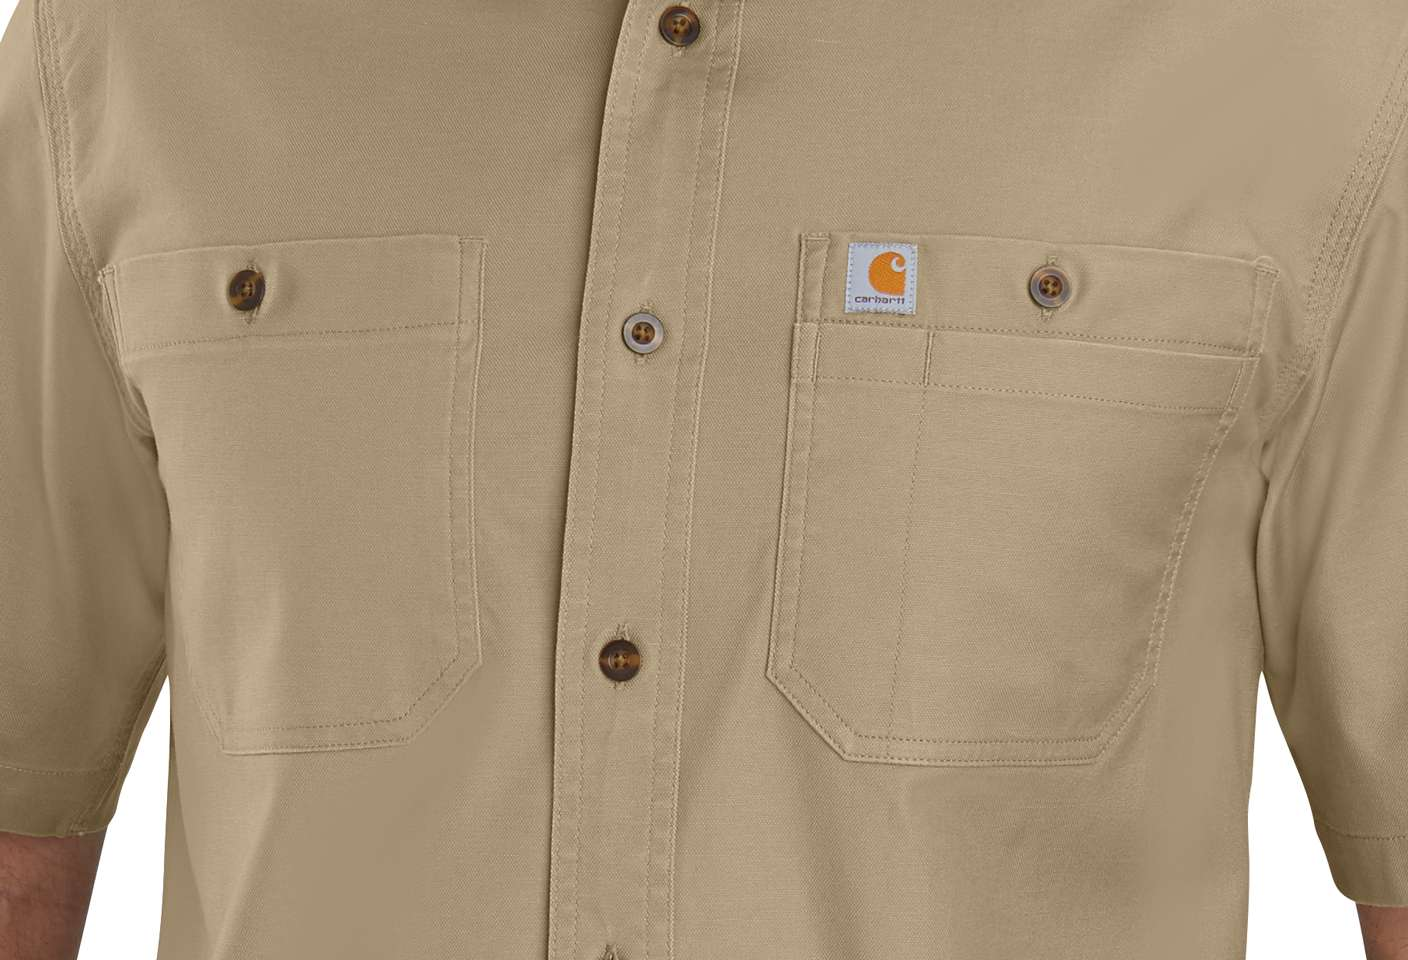 Chest pocket with utility panel for extra storage